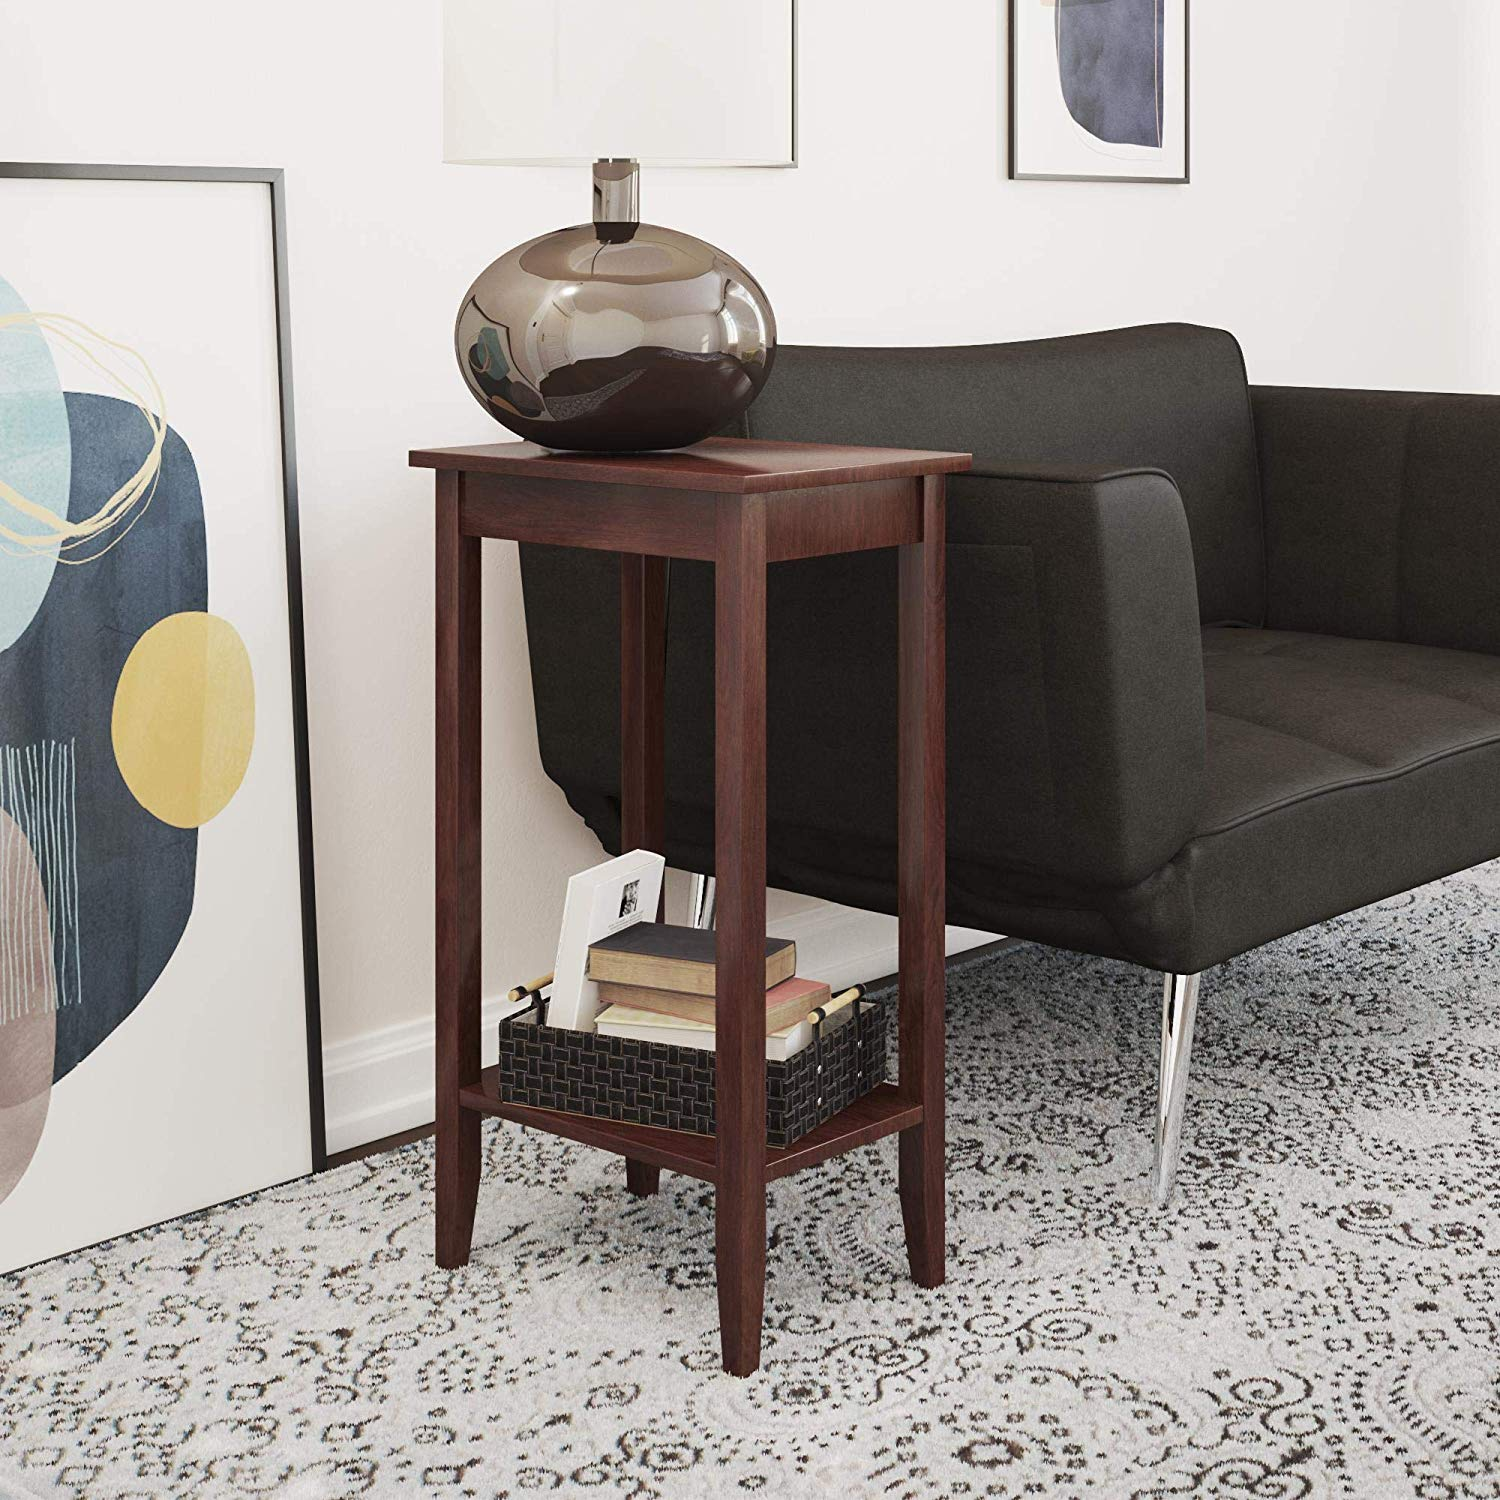 dhp rosewood tall end table simple design multi accent purpose small space medium coffee brown kitchen dining with mirror salvaged trestle gold glass lamp sofa matching tables